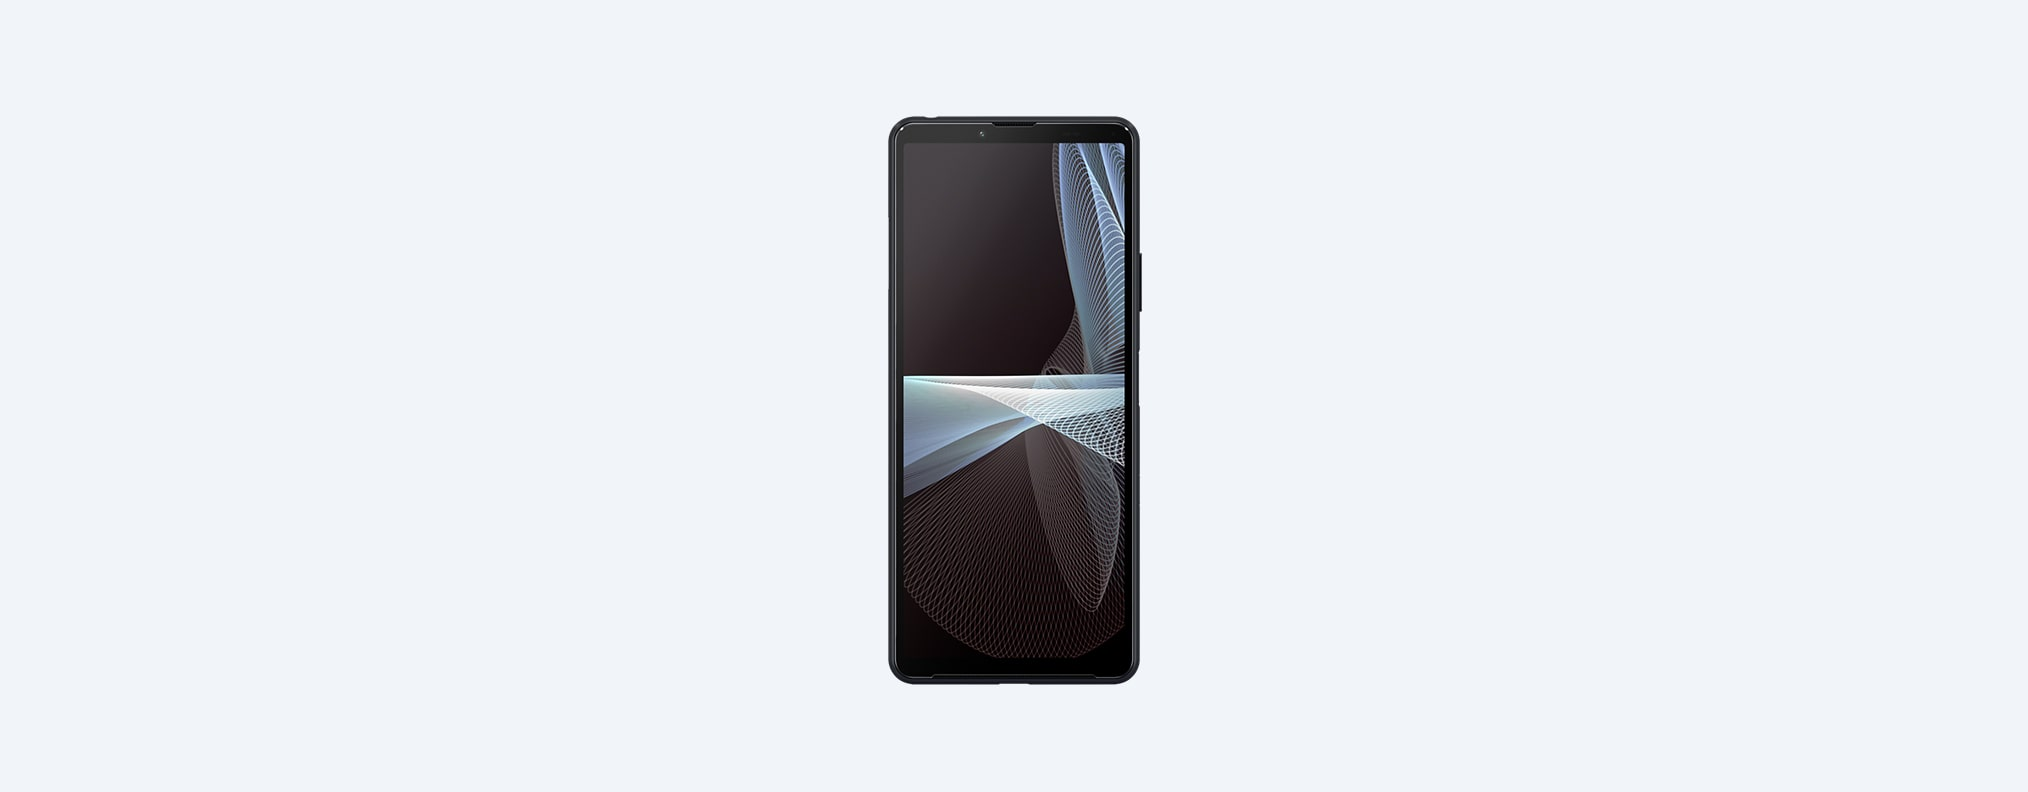 Xperia 10 III Black Color